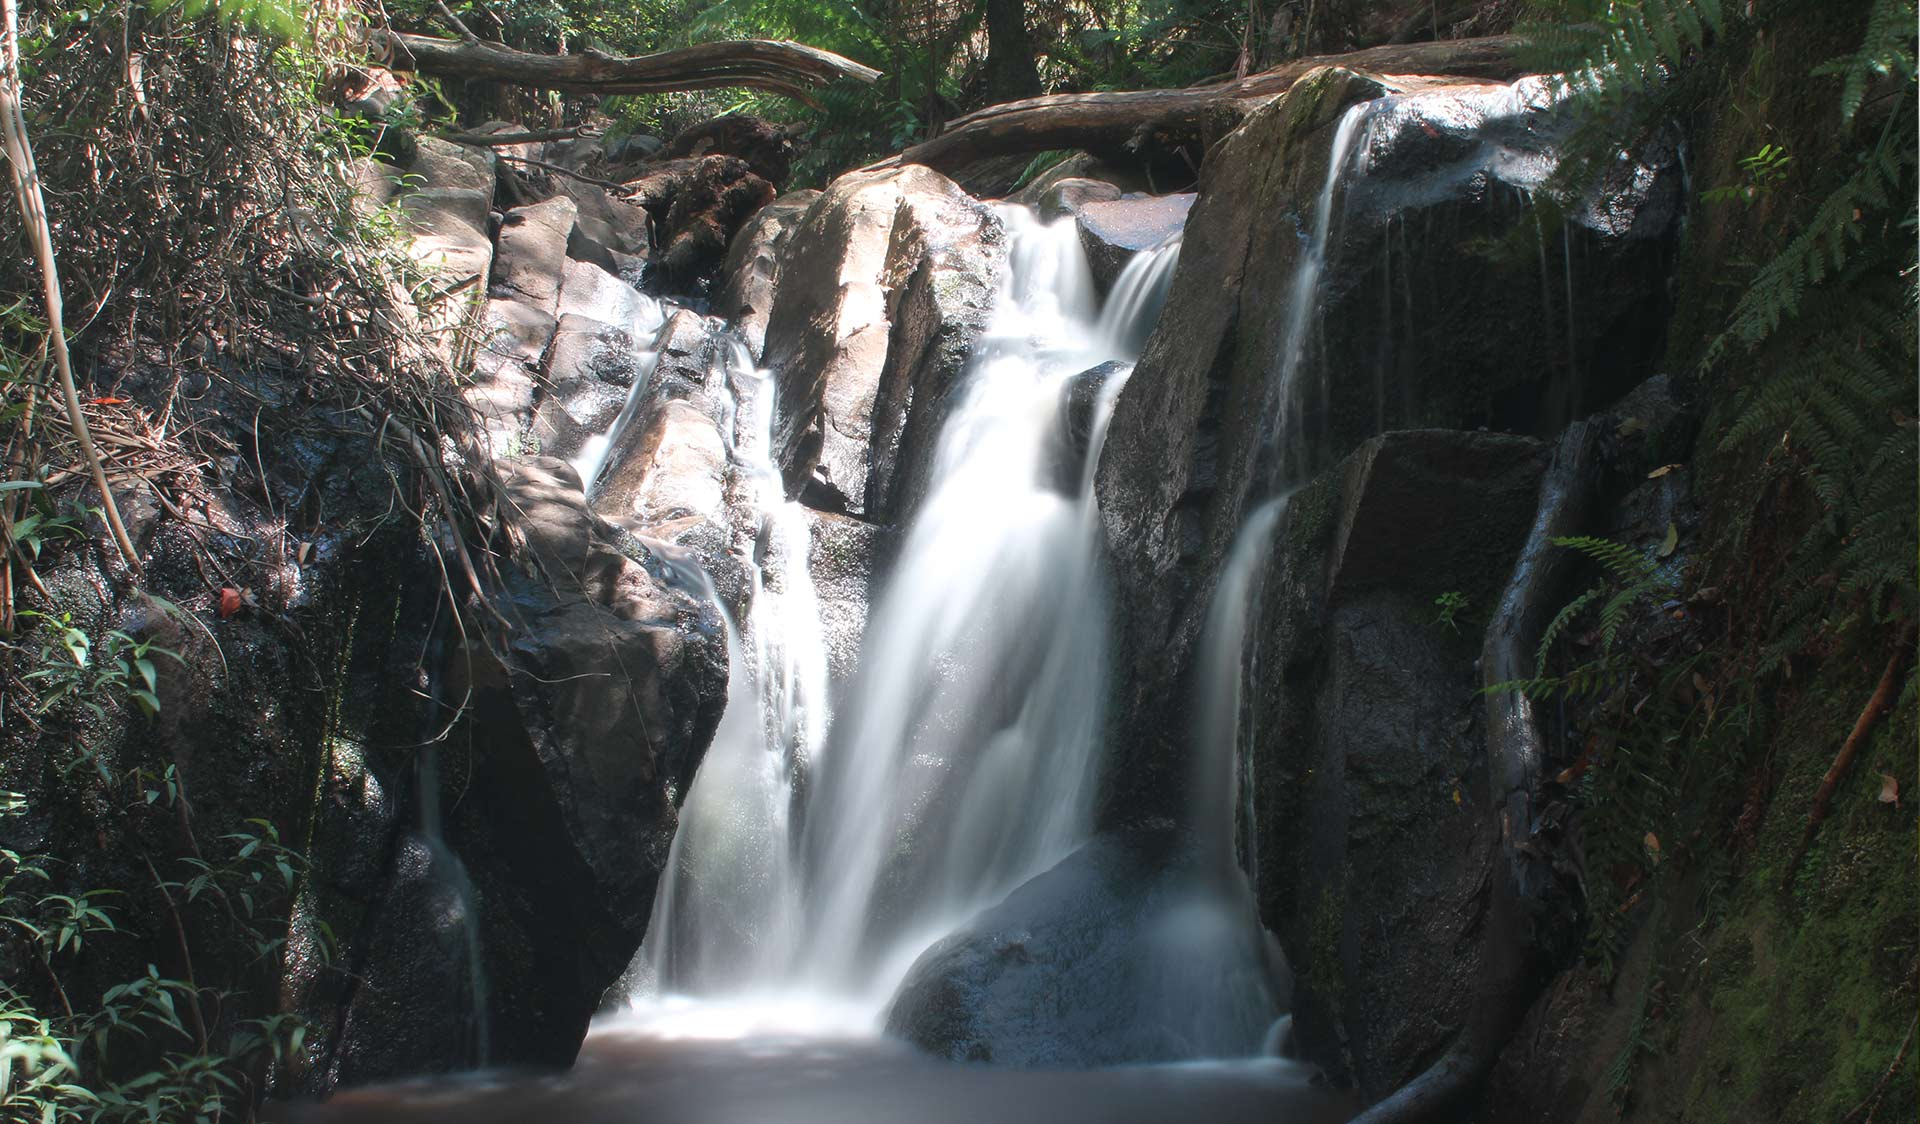 Water cascades over Olinda Falls